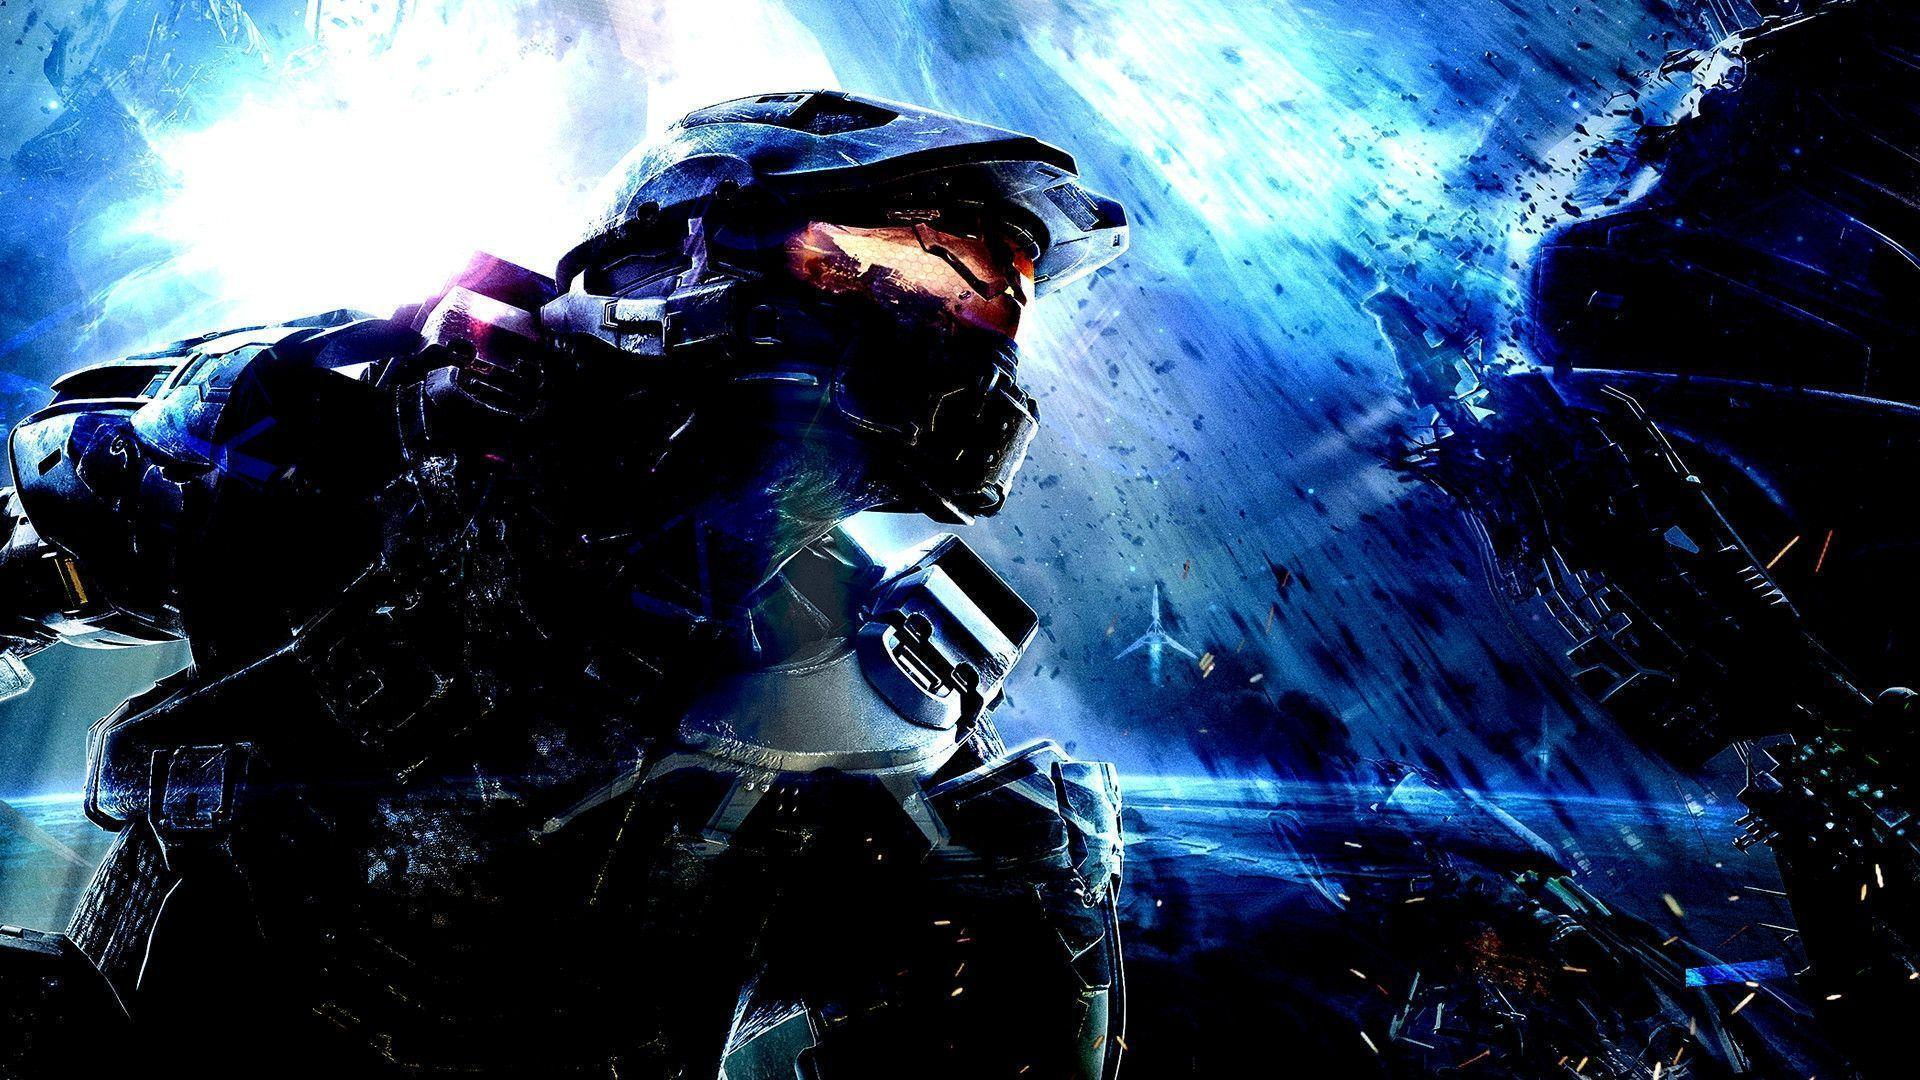 halo 4 computer backgrounds Wallpapers HD Image 7457